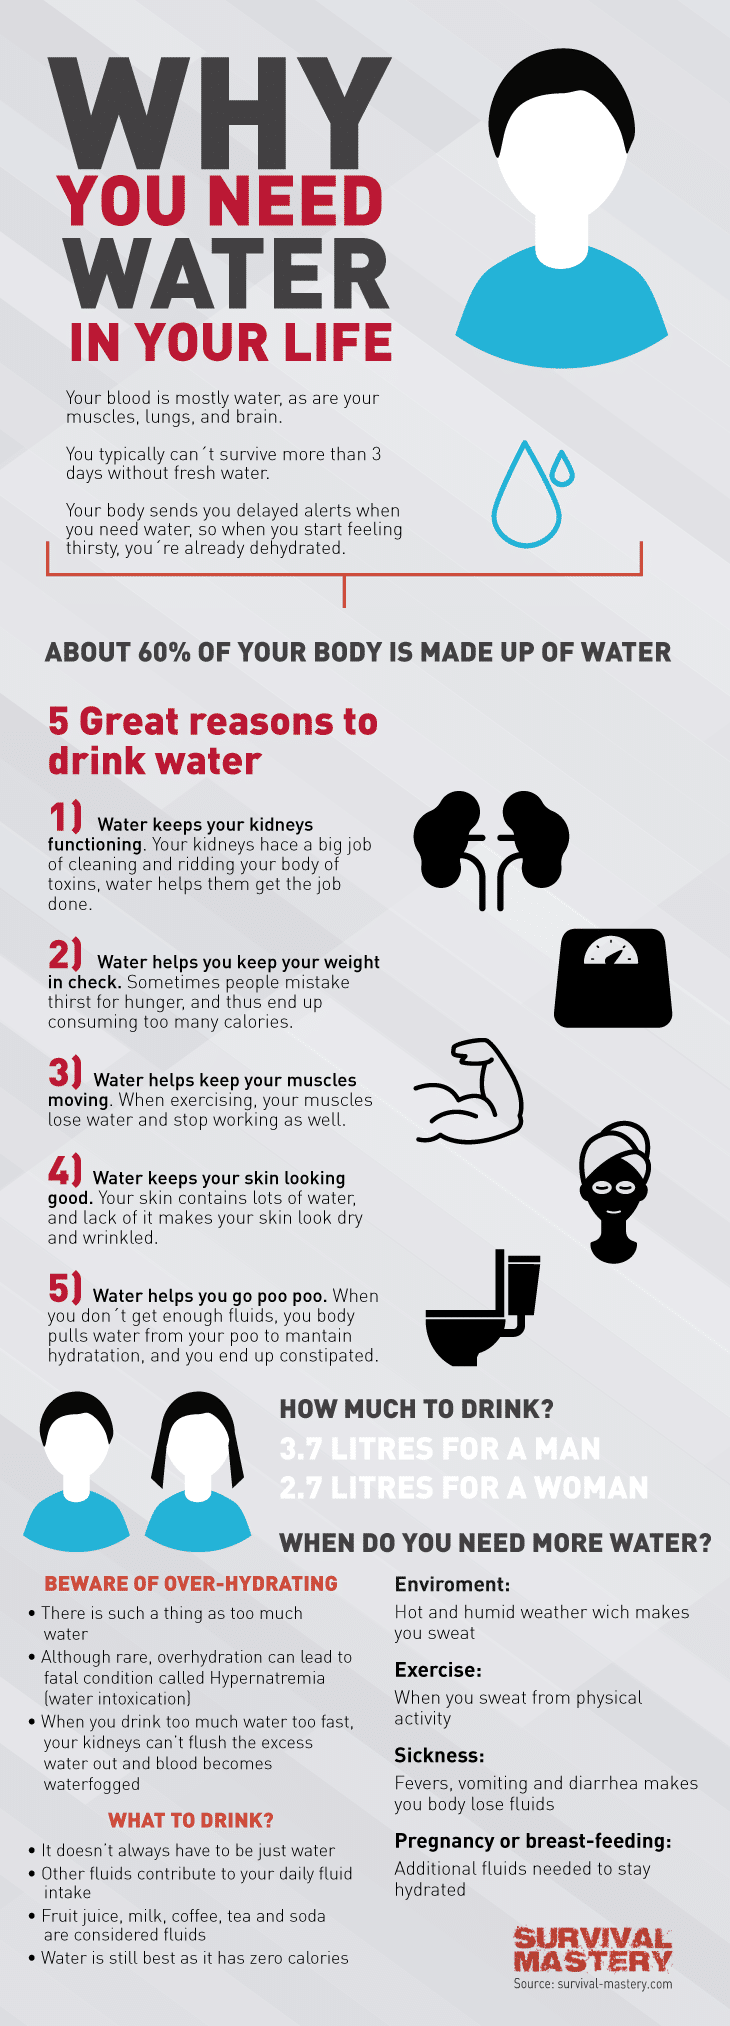 Water in life infographic